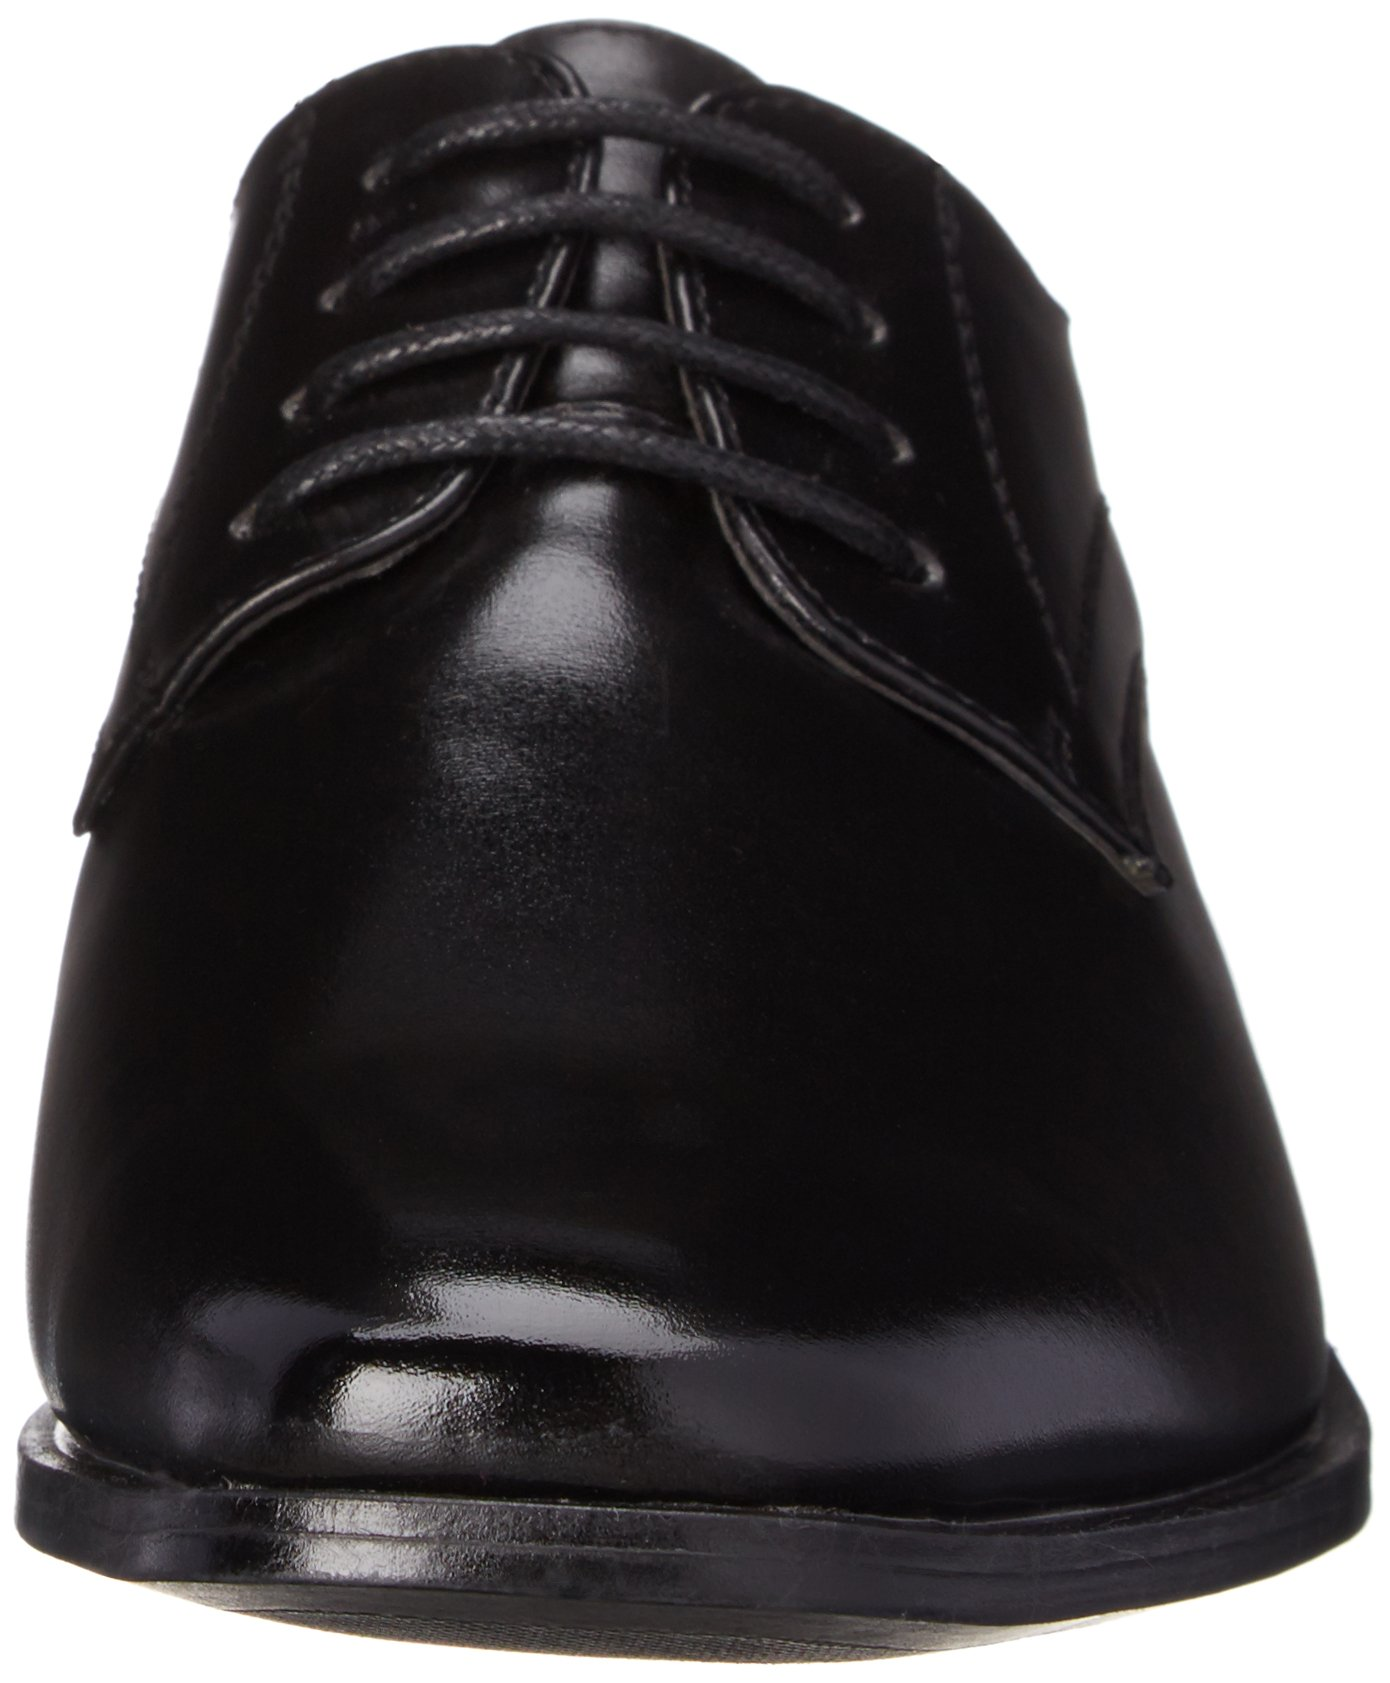 Stacy Adams Carmichael Plain Toe Lace-up Uniform Oxford Dress Shoe (Little Kid/Big Kid),Black,4 M US Big Kid by STACY ADAMS (Image #4)